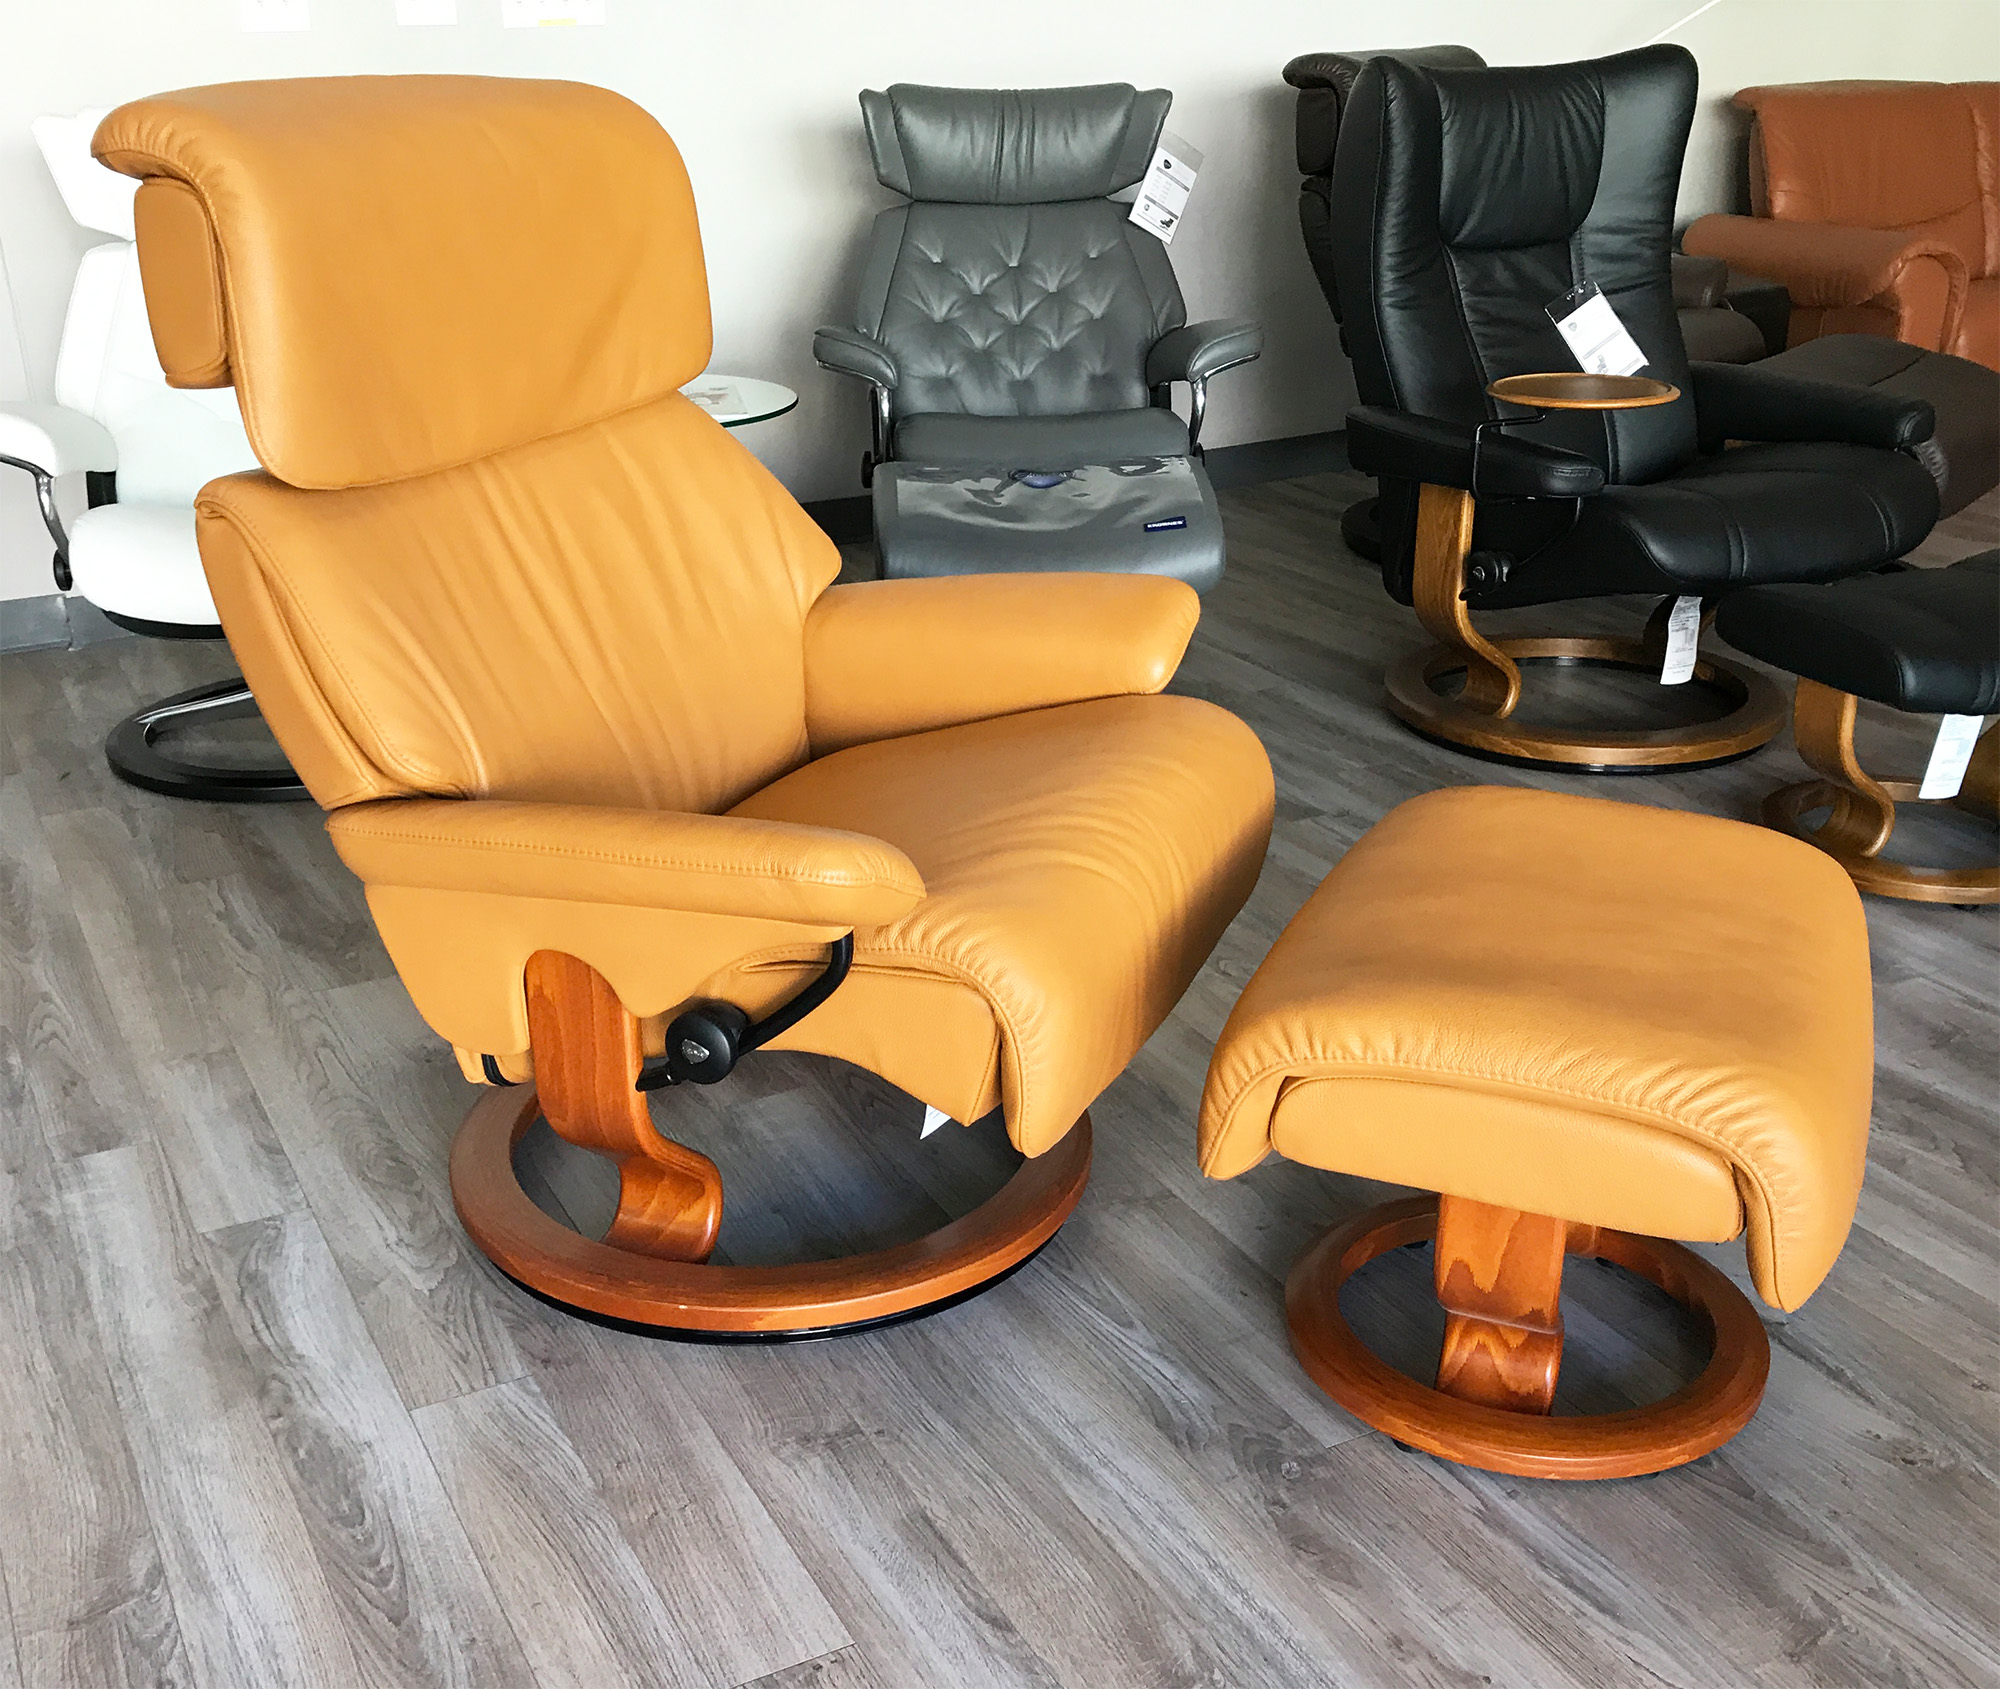 Phenomenal Ekornes Recliner Chair Stressless Power Legcomfort Classic Gmtry Best Dining Table And Chair Ideas Images Gmtryco